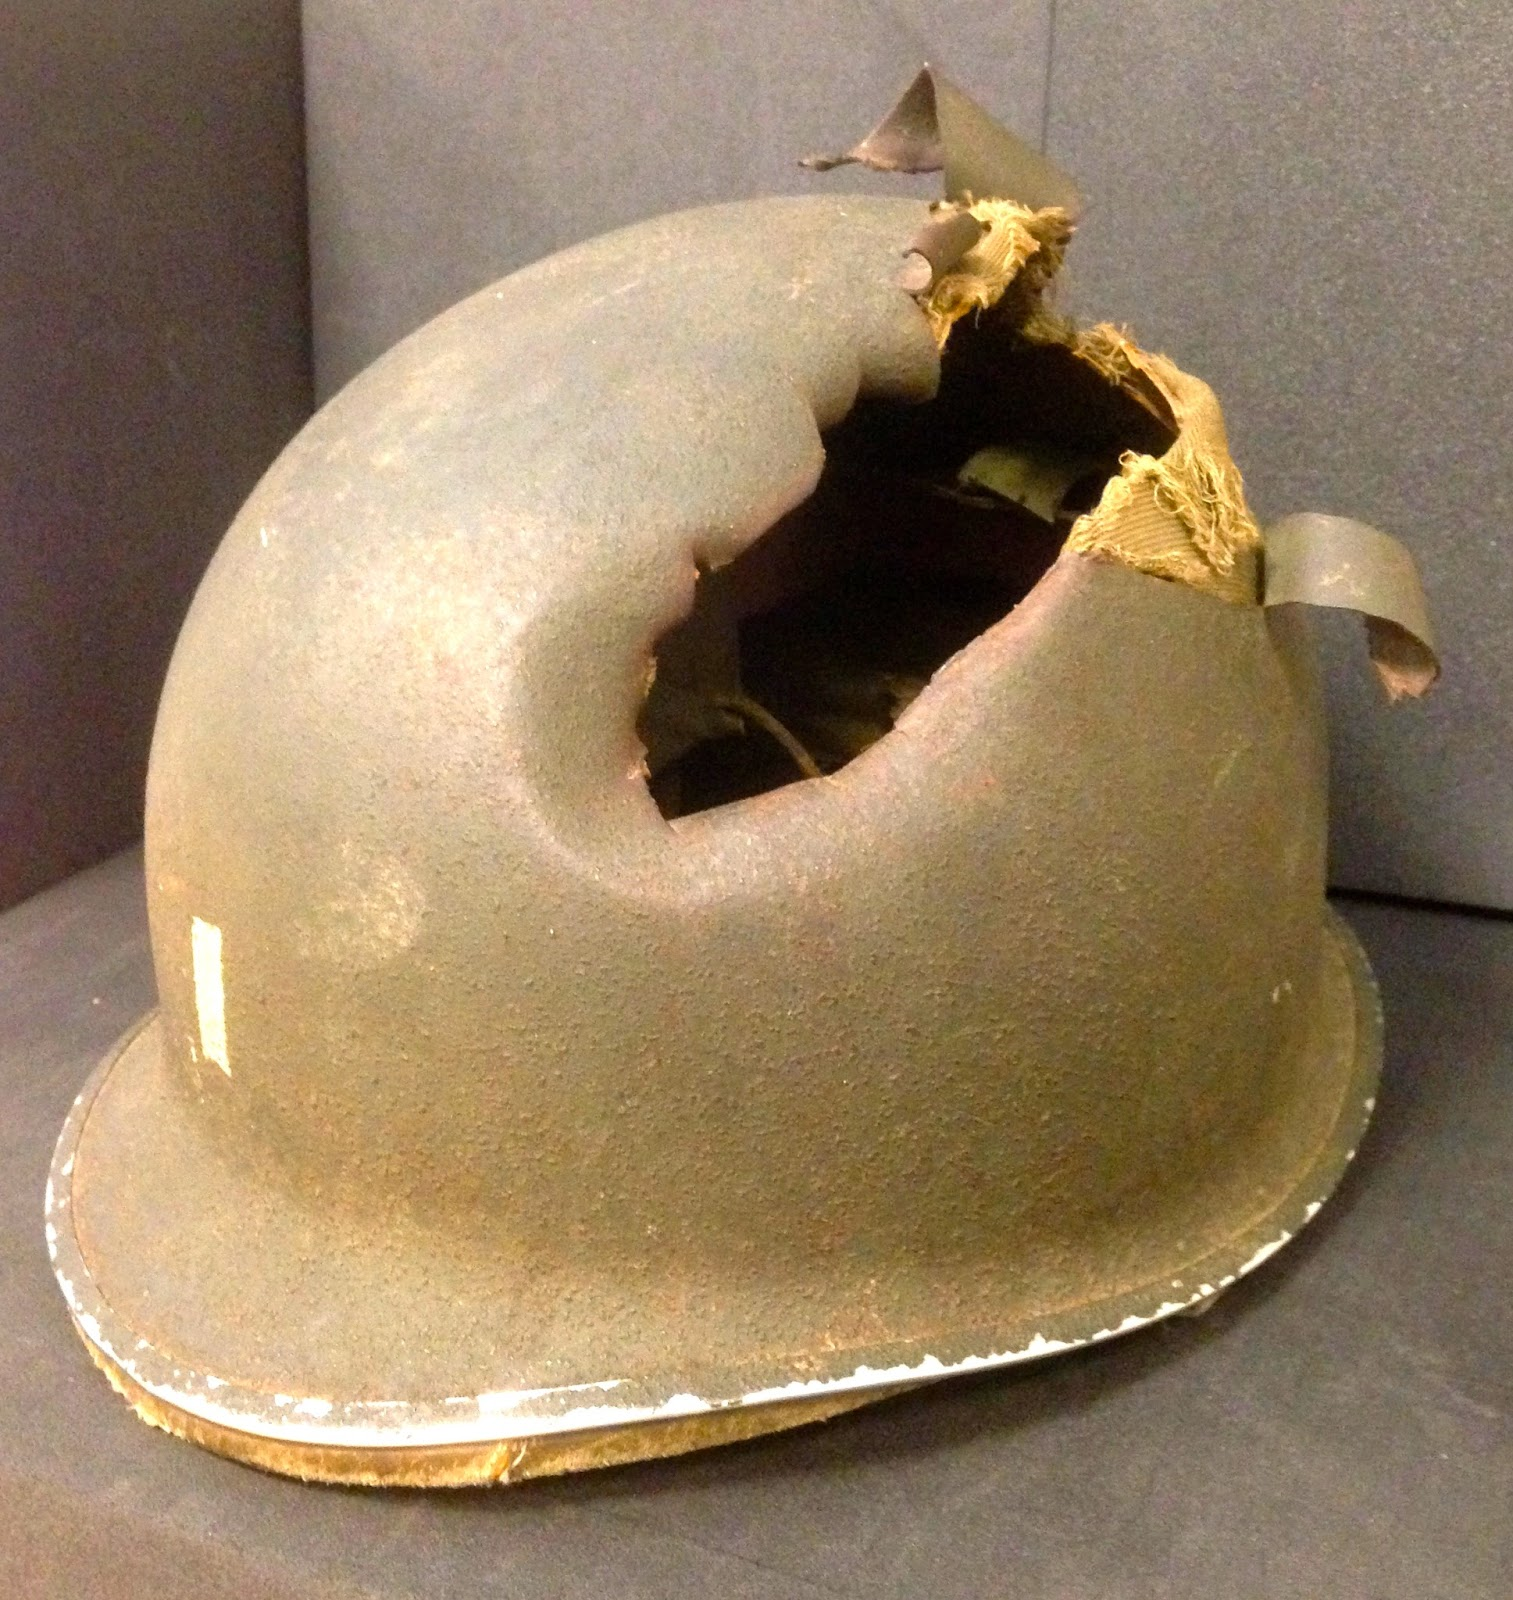 A helmet with a gaping rip in its top.